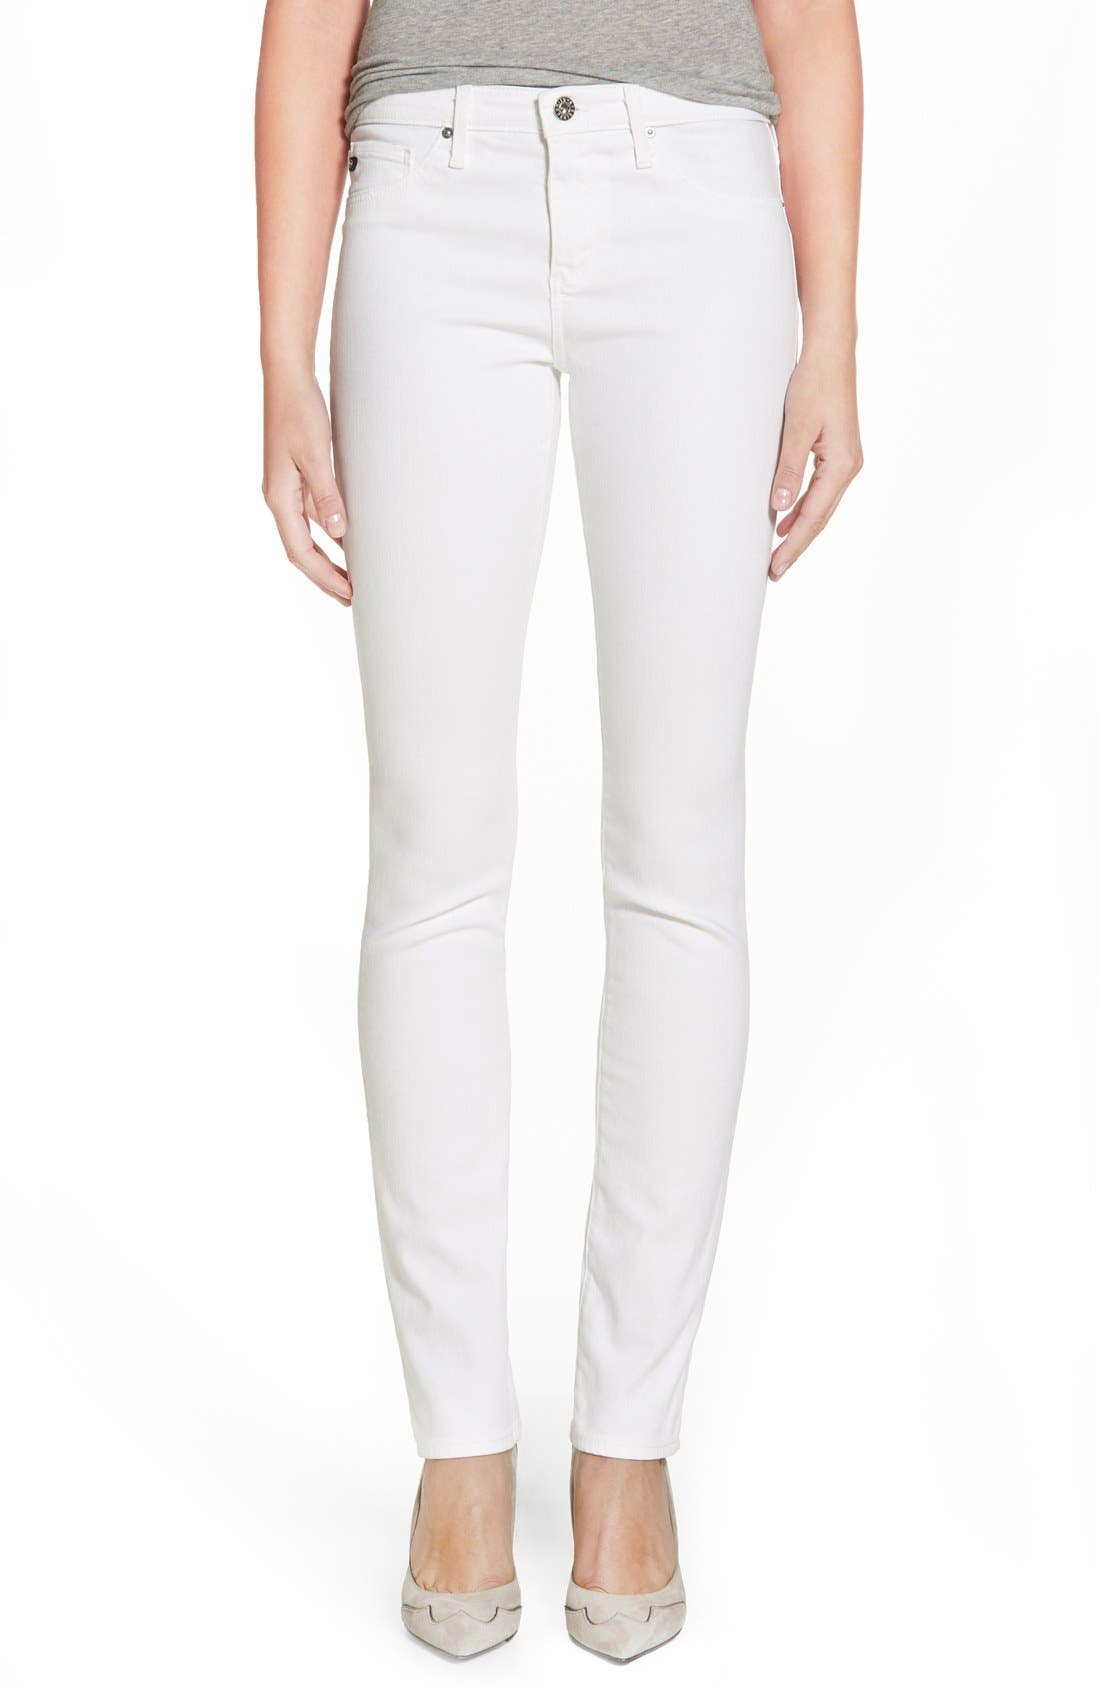 AG, 'Harper' Slim Straight Leg Jeans, Main thumbnail 1, color, WHITE